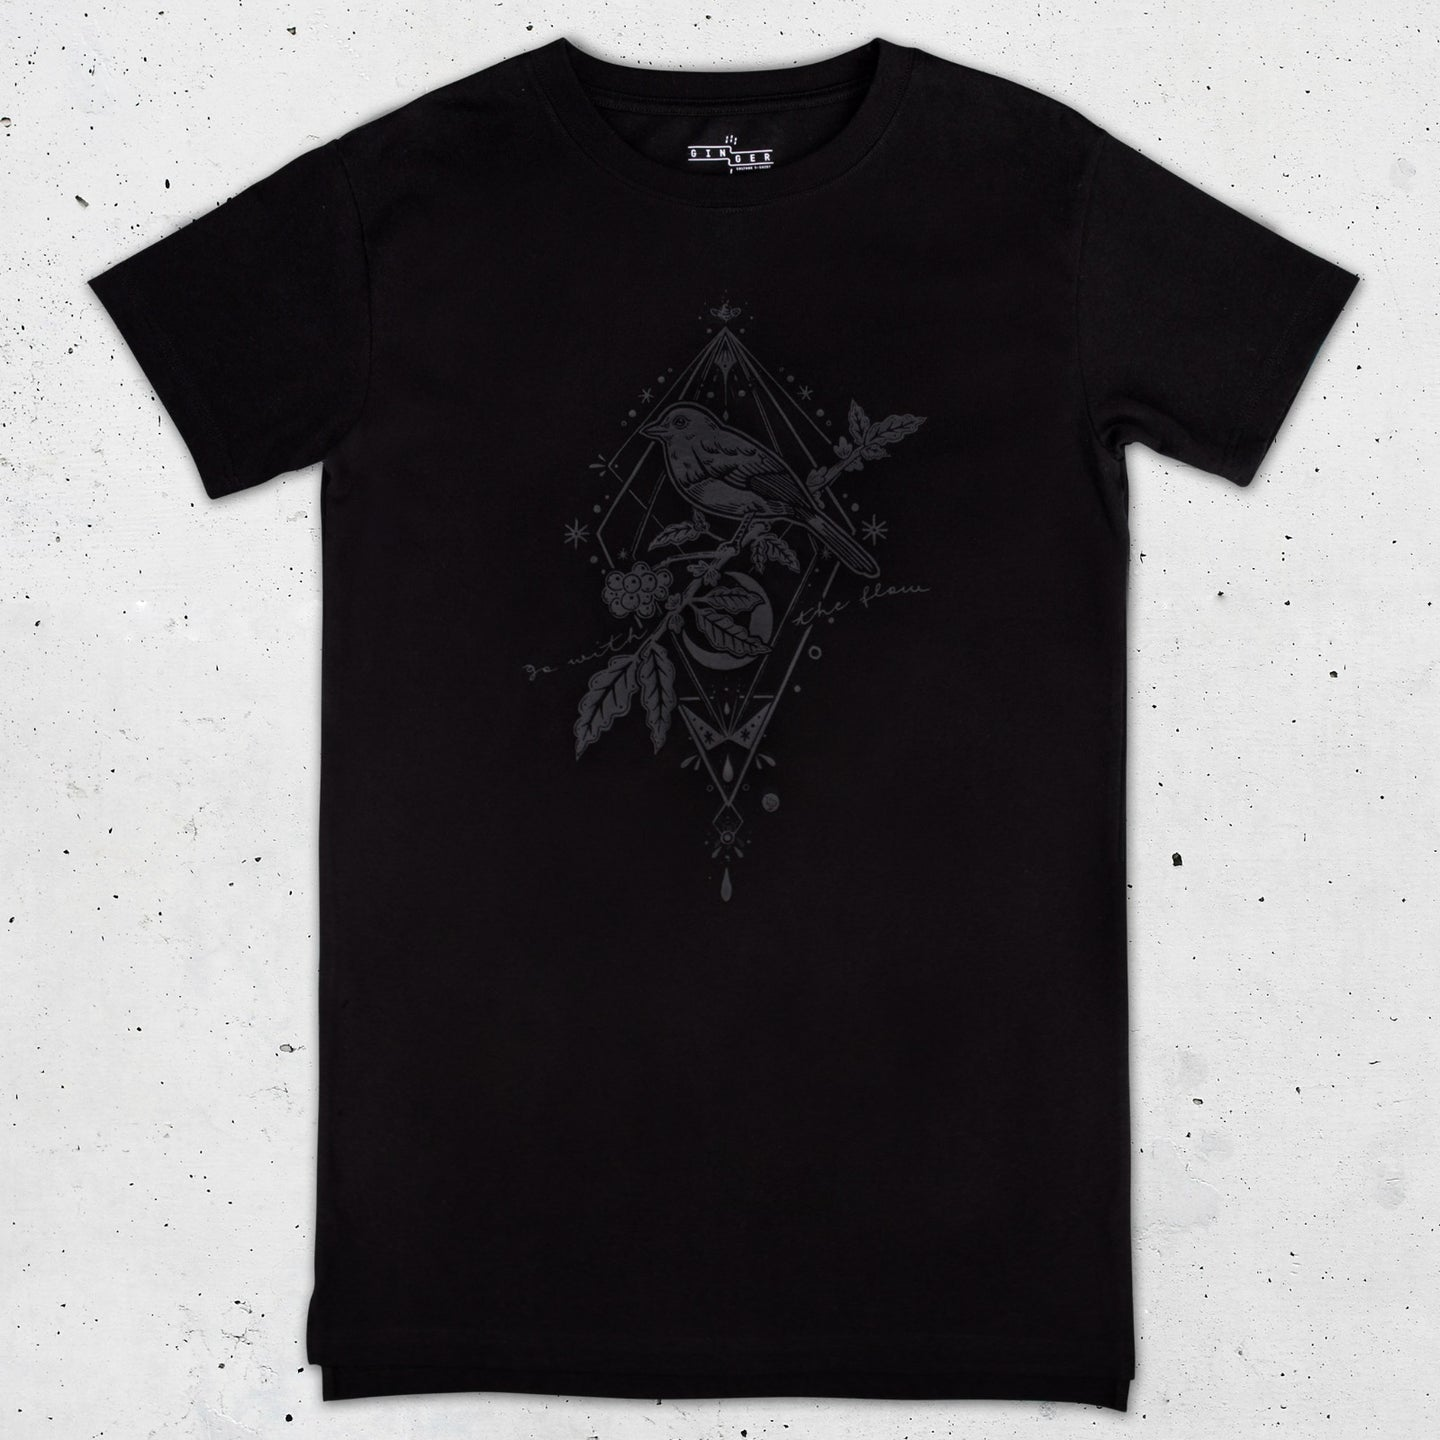 Bird Graphic Long T-shirt in Black - LAZY DUO TATTOO